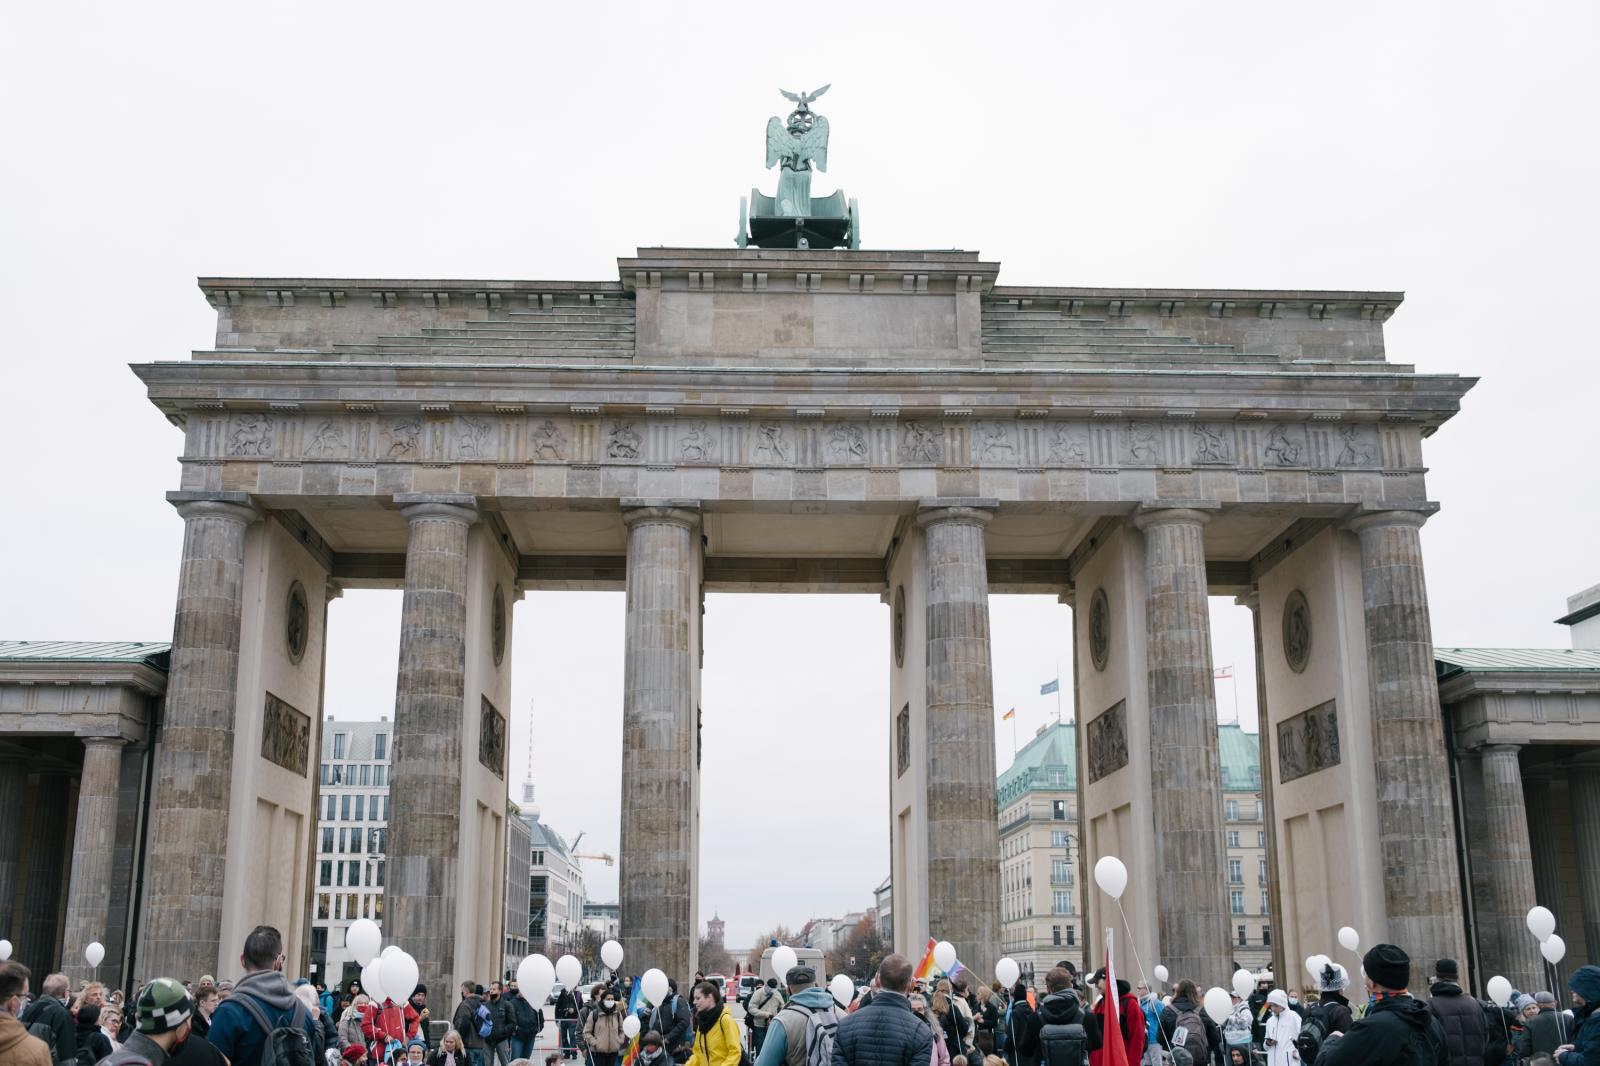 Protesters gather at 9 AM in front of Brandenburger Tor.